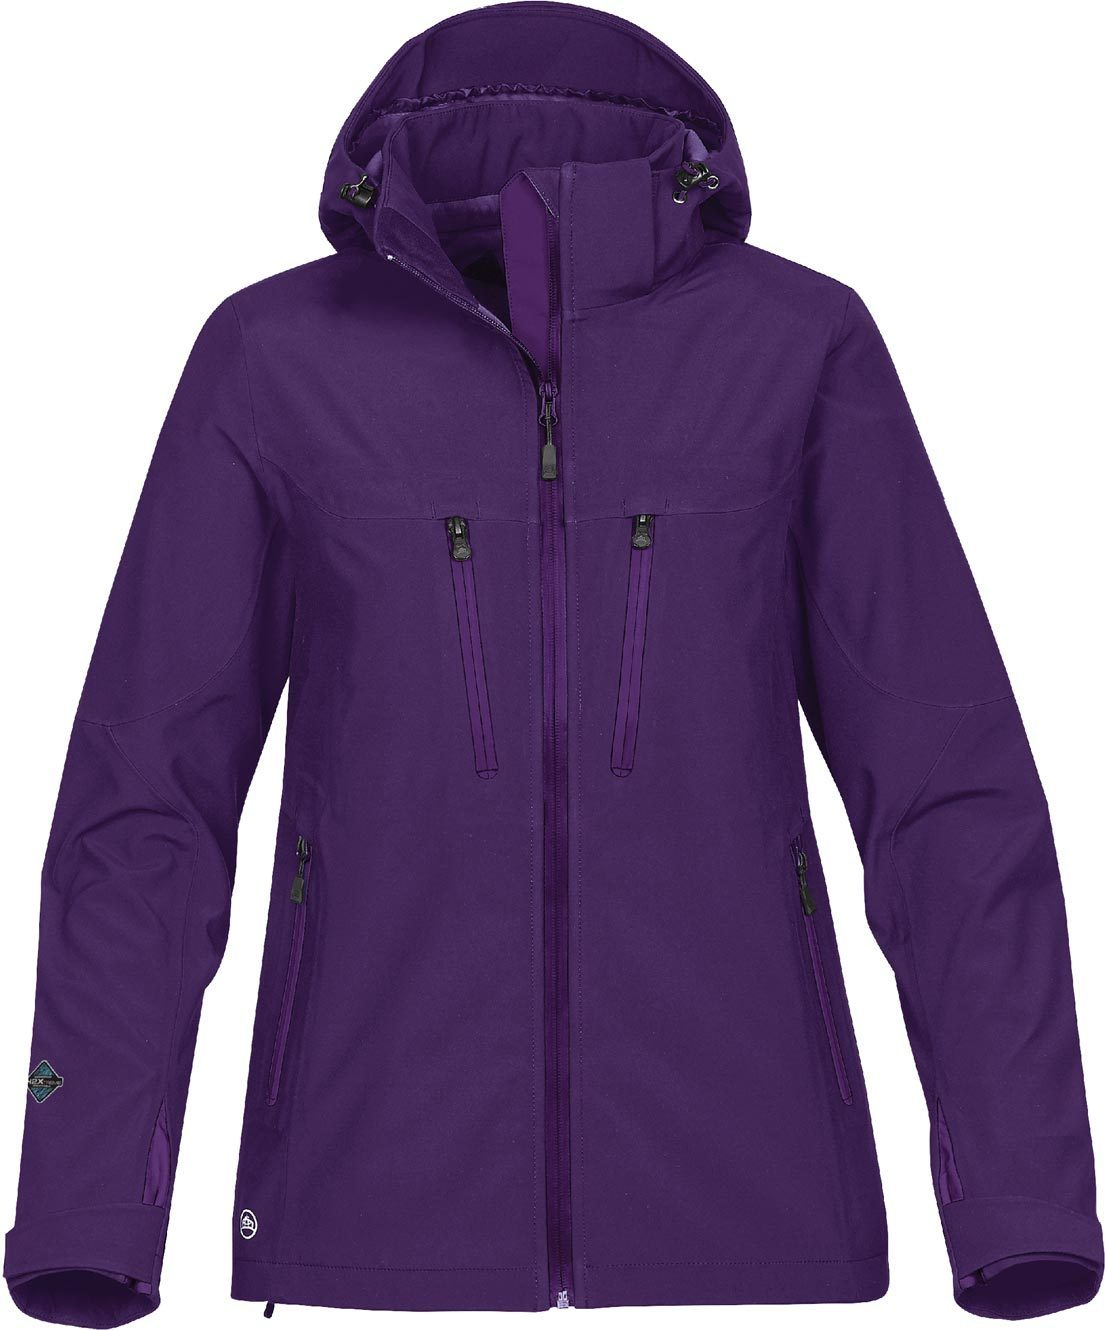 STORMTECH LADIES PATROL SOFT SHELL JACKET